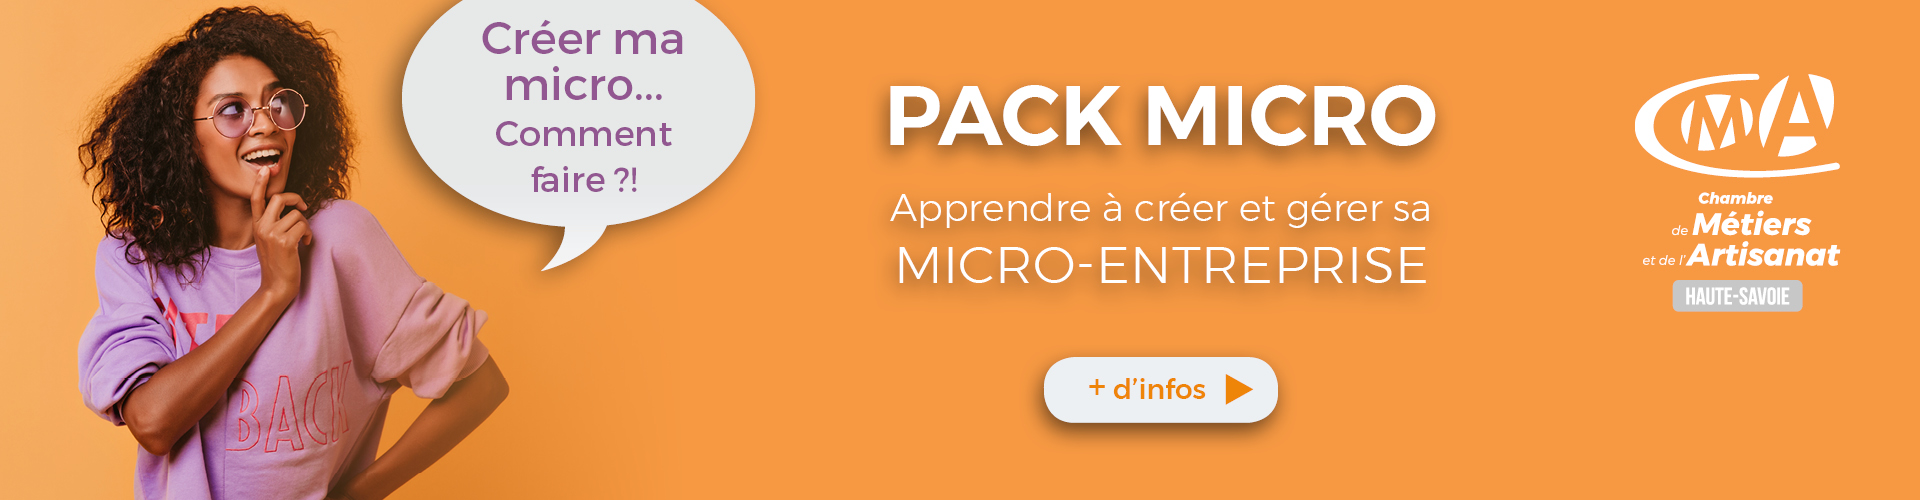 pack_micro